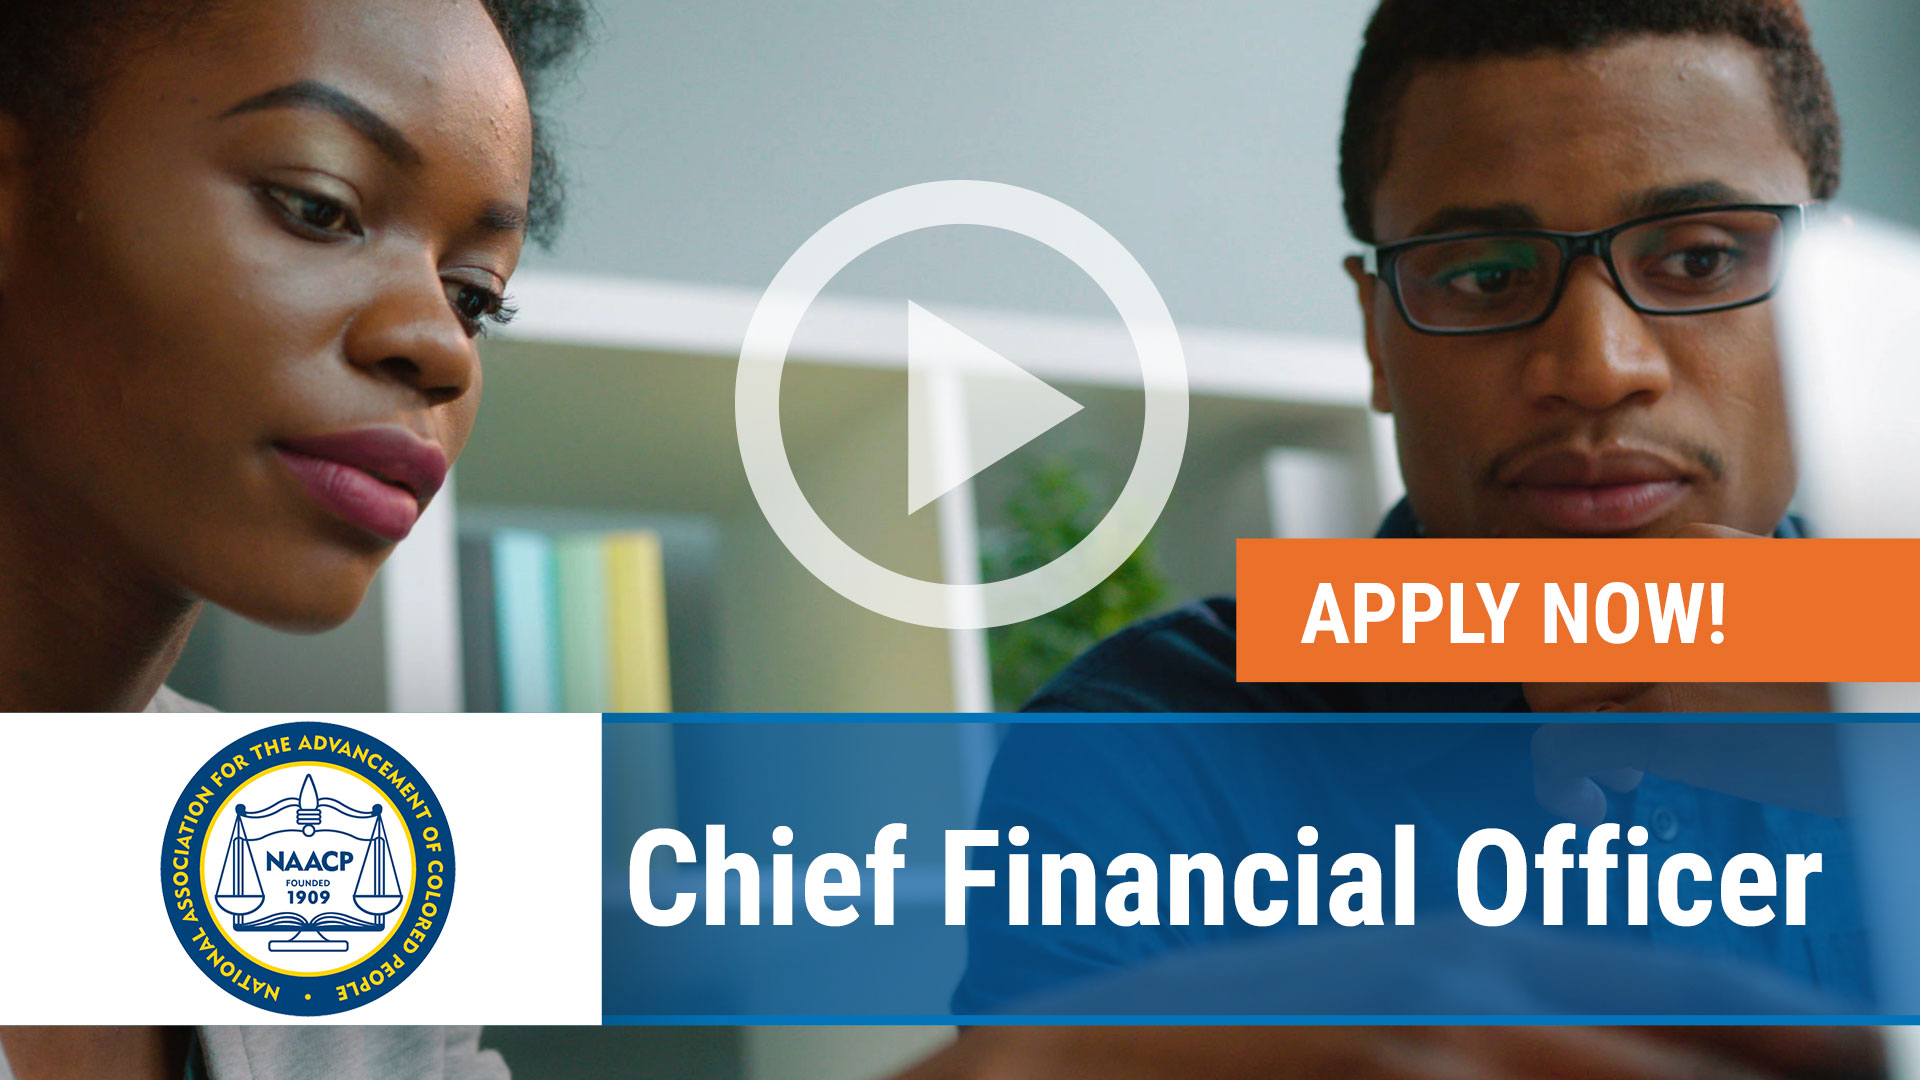 Watch our careers video for available job opening Chief Financial Officer for the NAACP in TBD, TBD